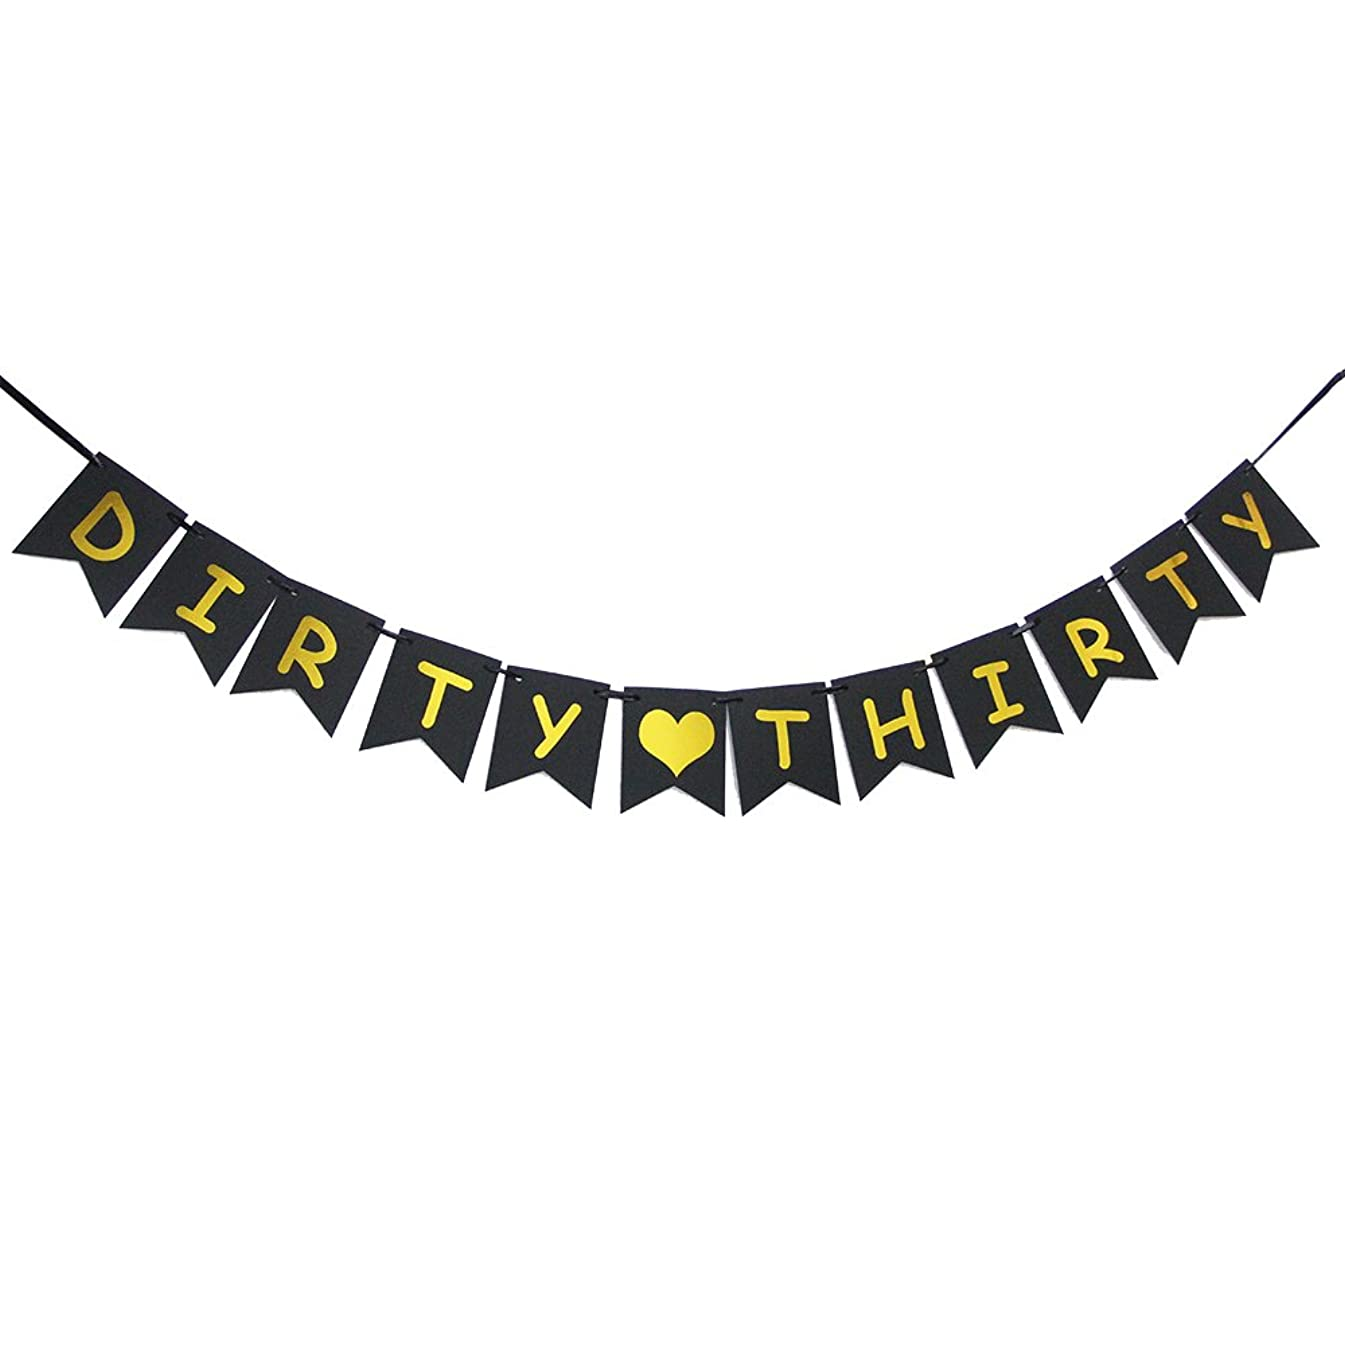 Dirty Thirty Banner -Gold Glitter Heart for 30TH Birthday 30 Years Wedding Anniversary Party Banner Decoration Bunting